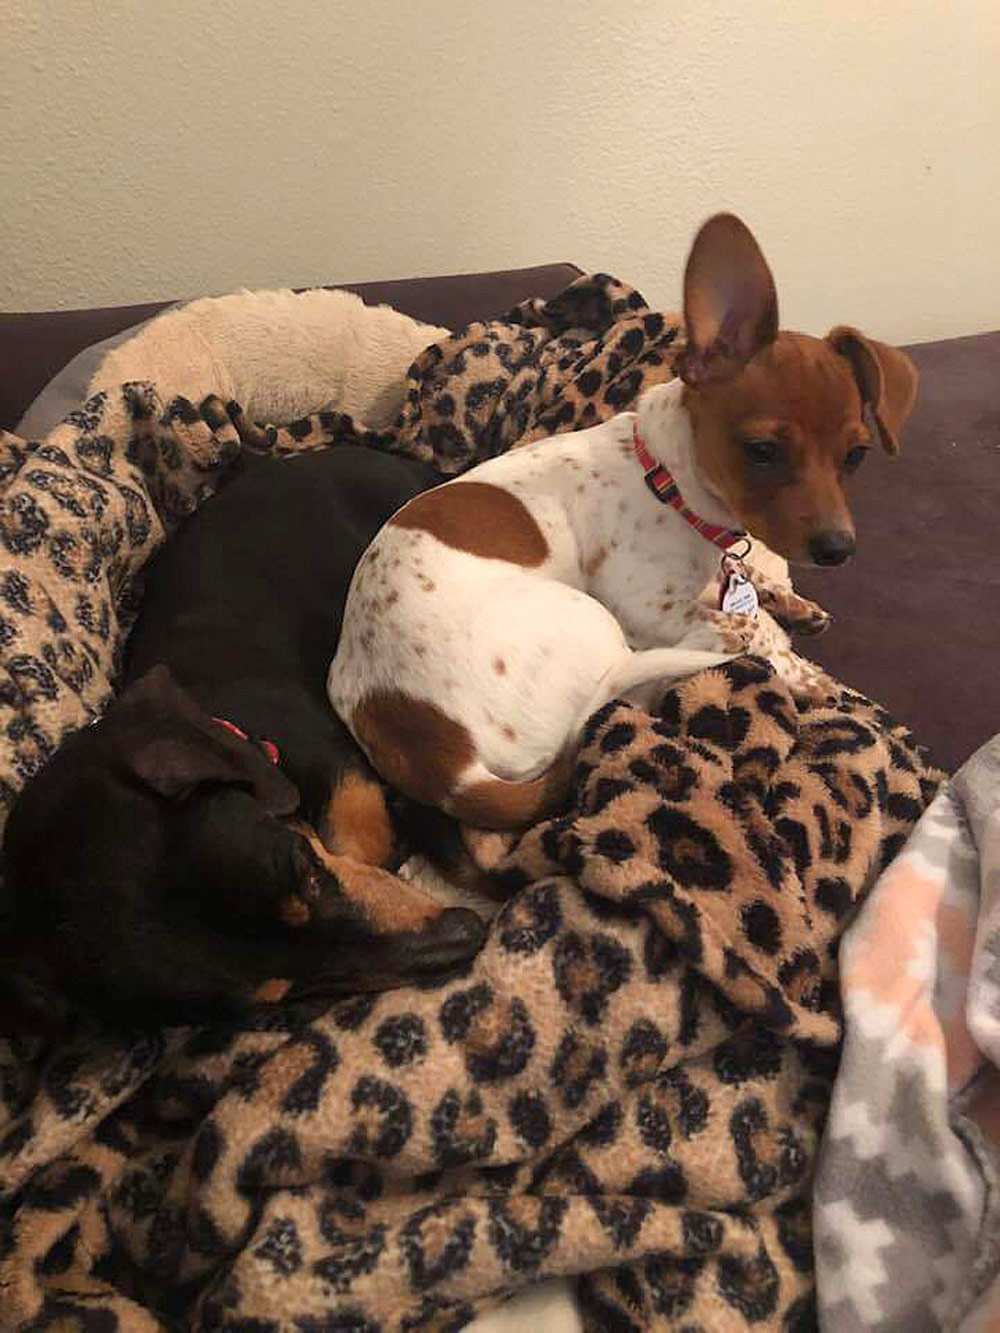 Cheryl G. In San Antonio adopted Melania, a four-month-old, five-pound half Piebald and half Chihuahua from a Rescue Group.